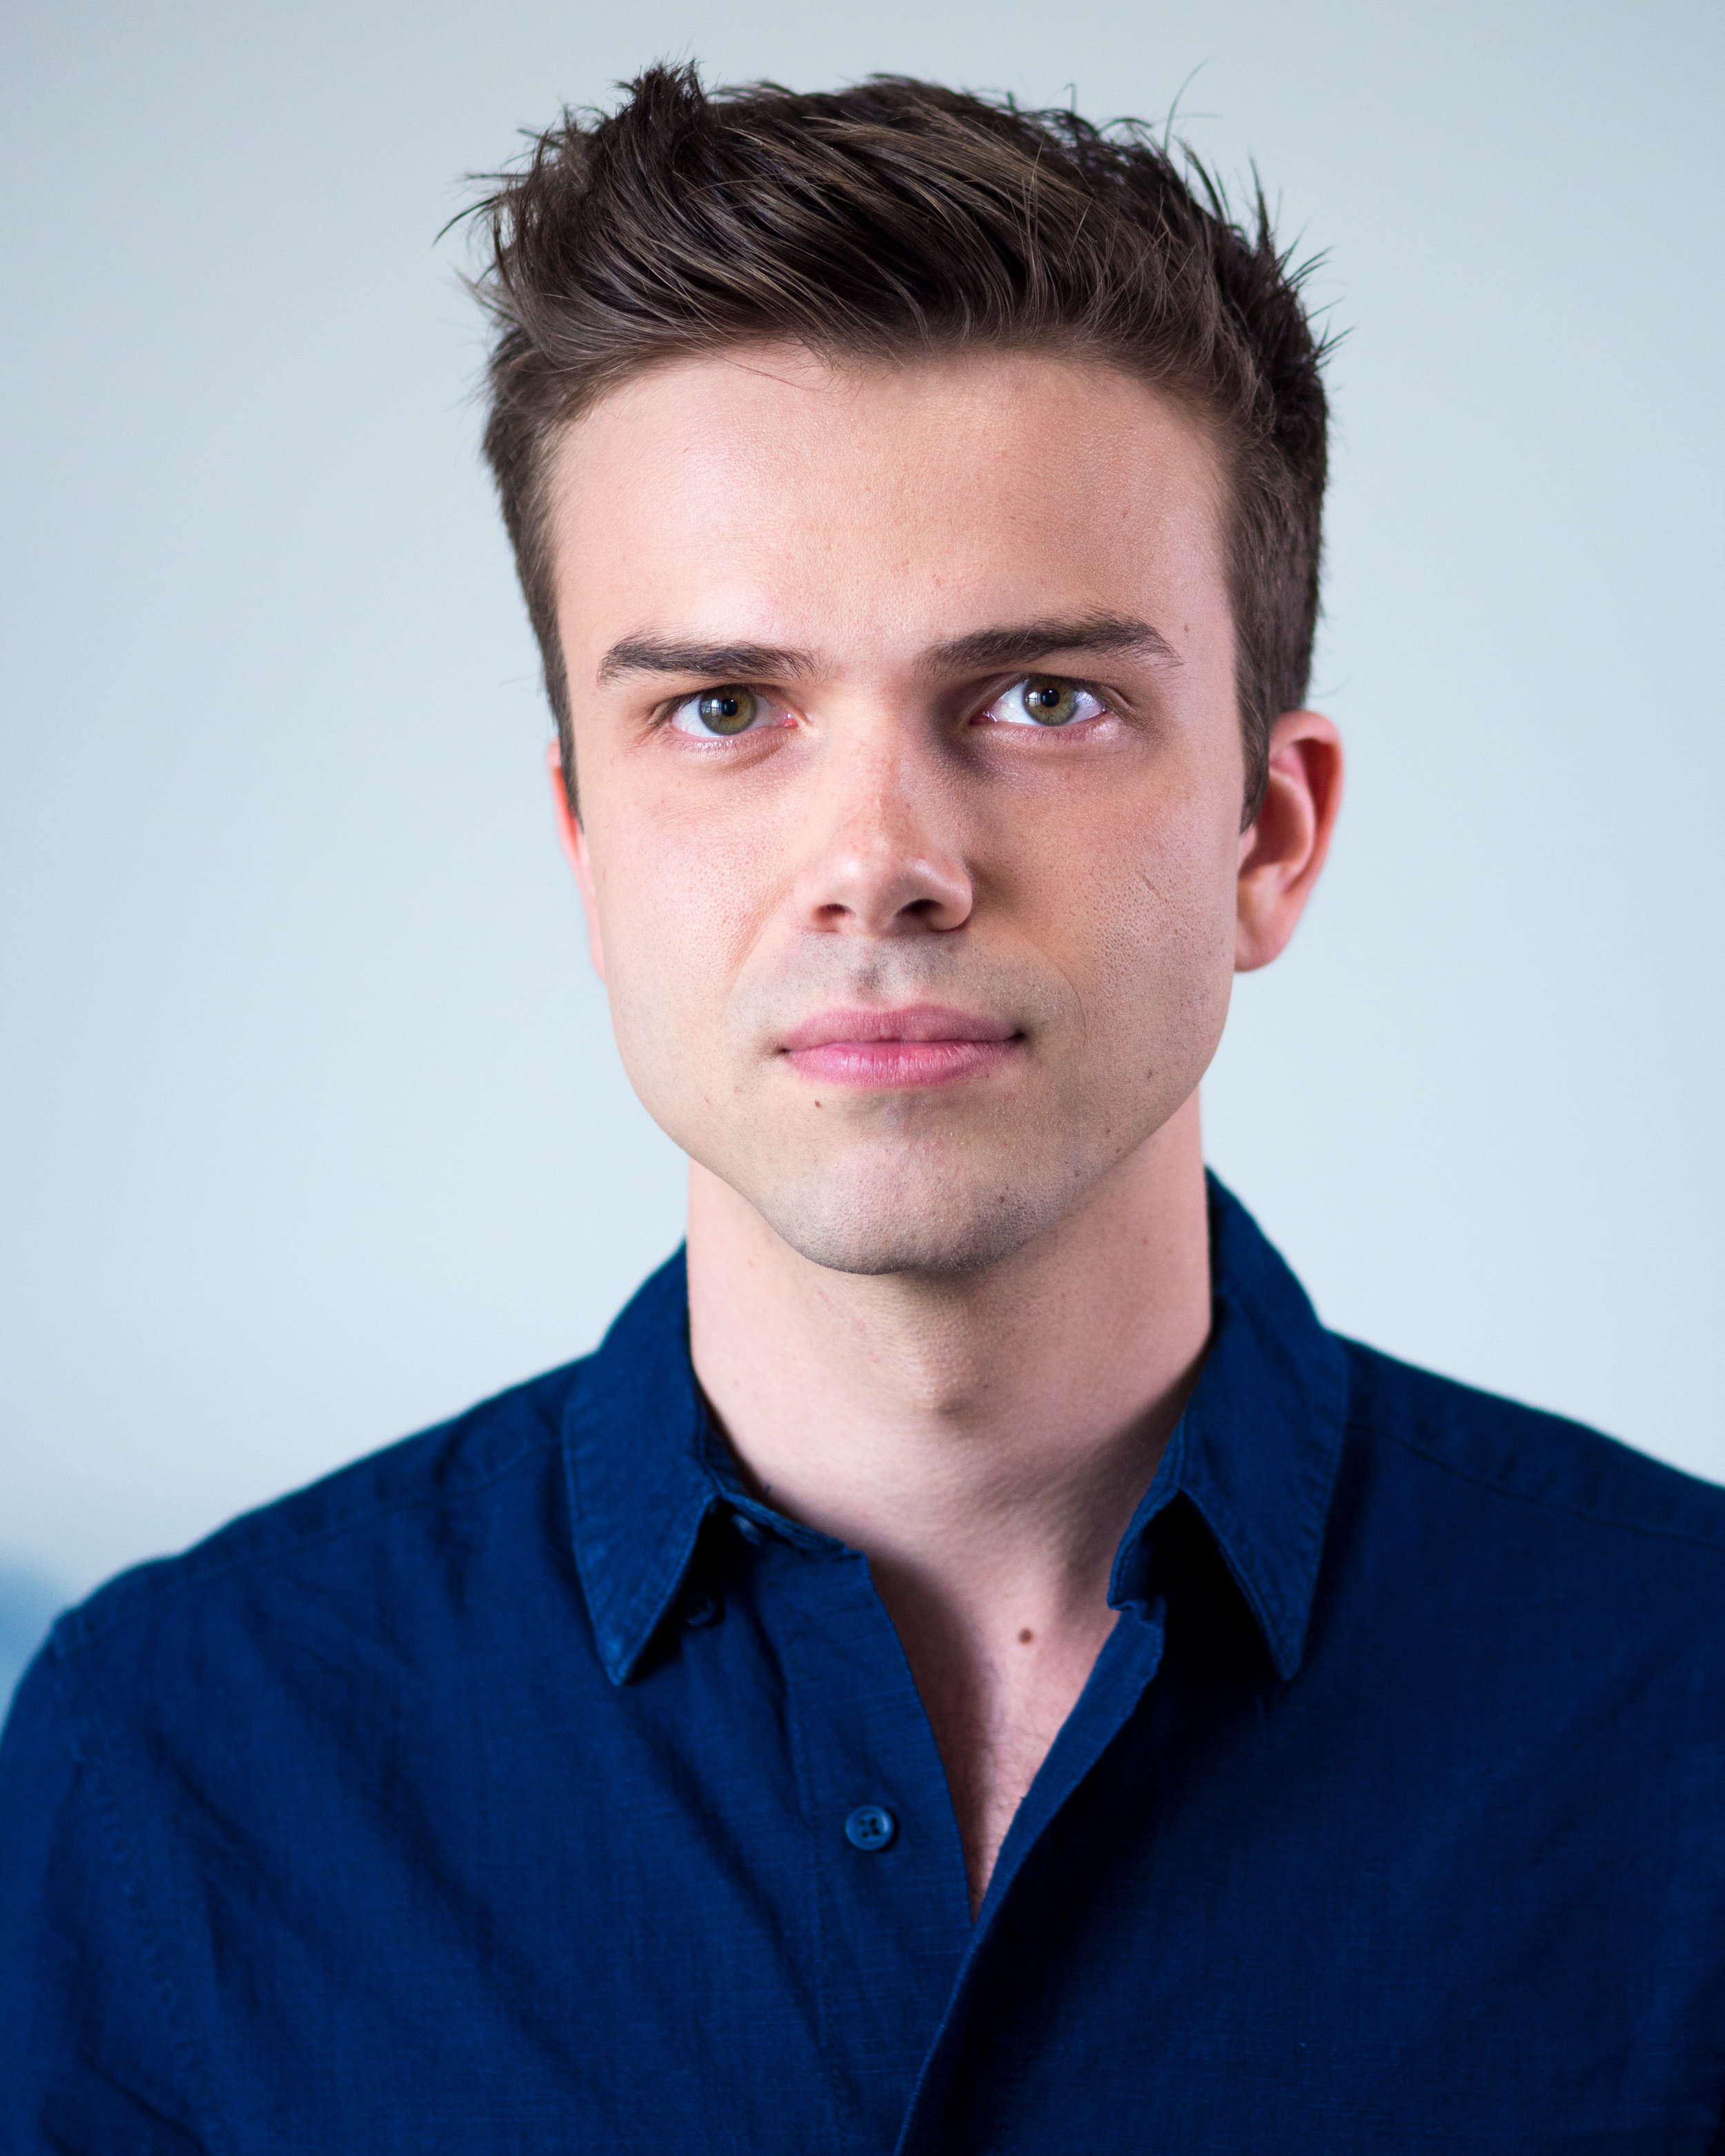 Adrien Pellerin - Theatrical Headshot